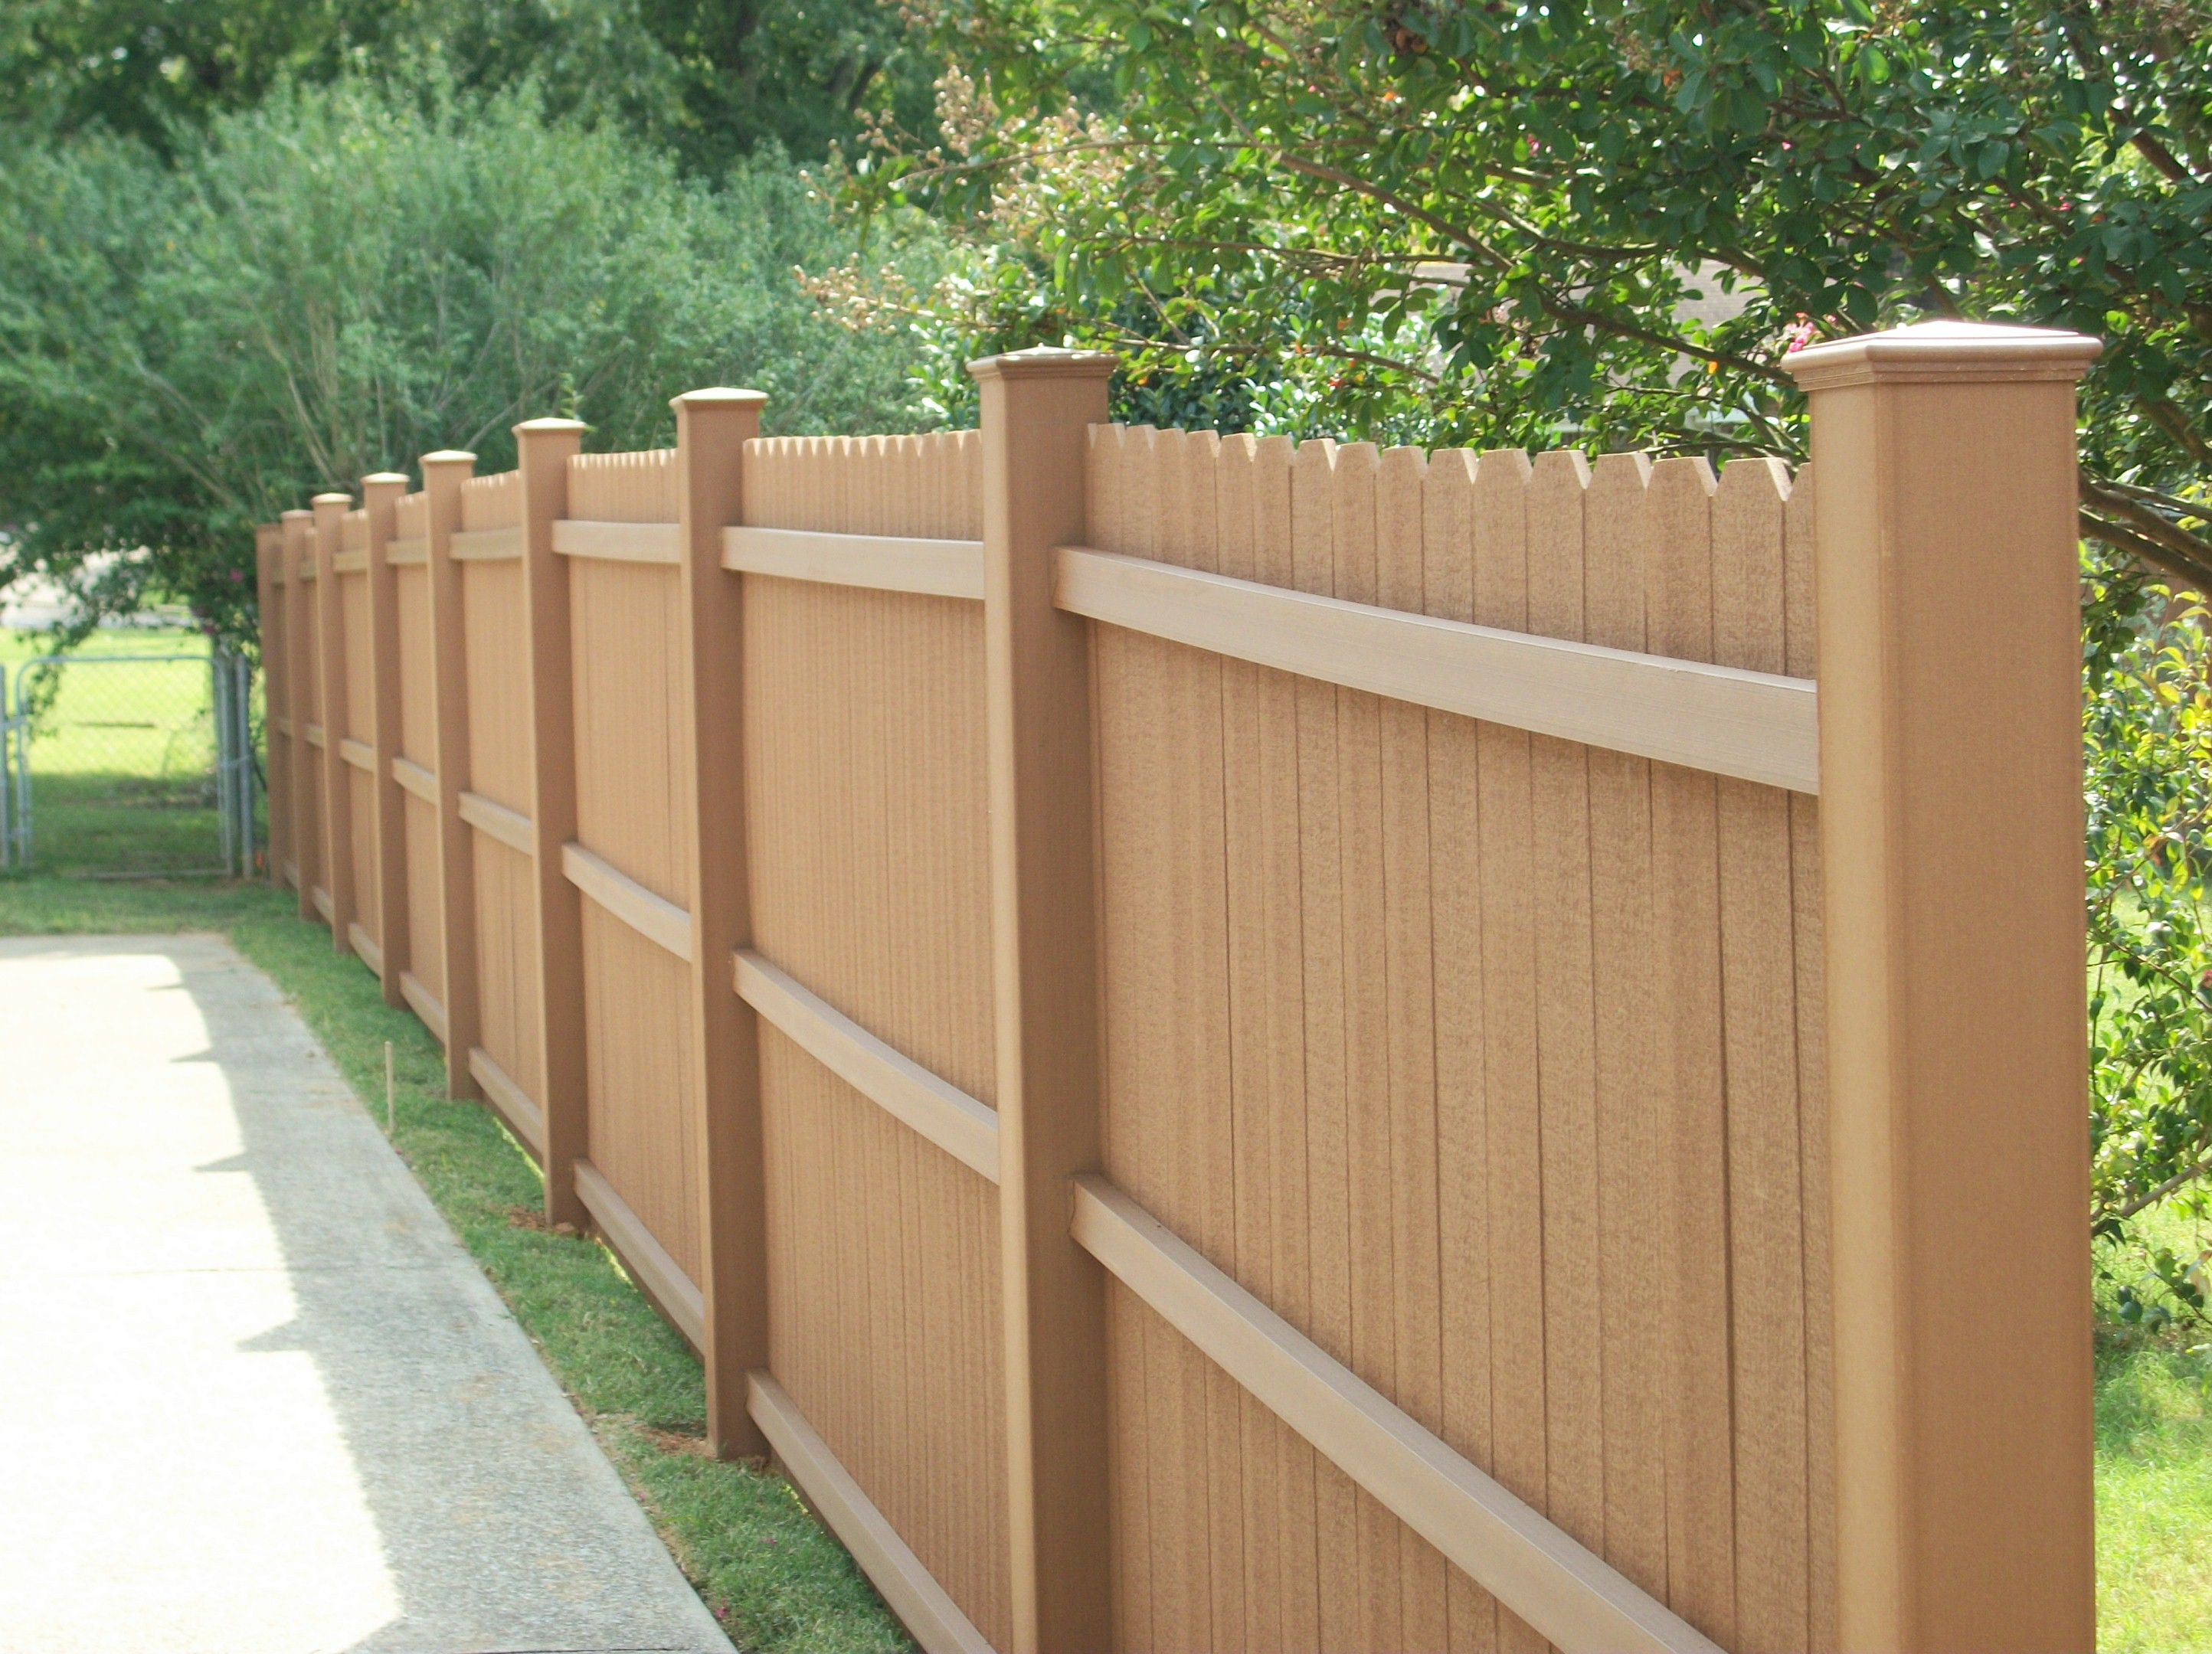 Cheapest composit fence panel plastic fence for garden in cheapest composit fence panel plastic fence for garden in australia garden patio wpc fence pinterest gardens australia and products baanklon Gallery